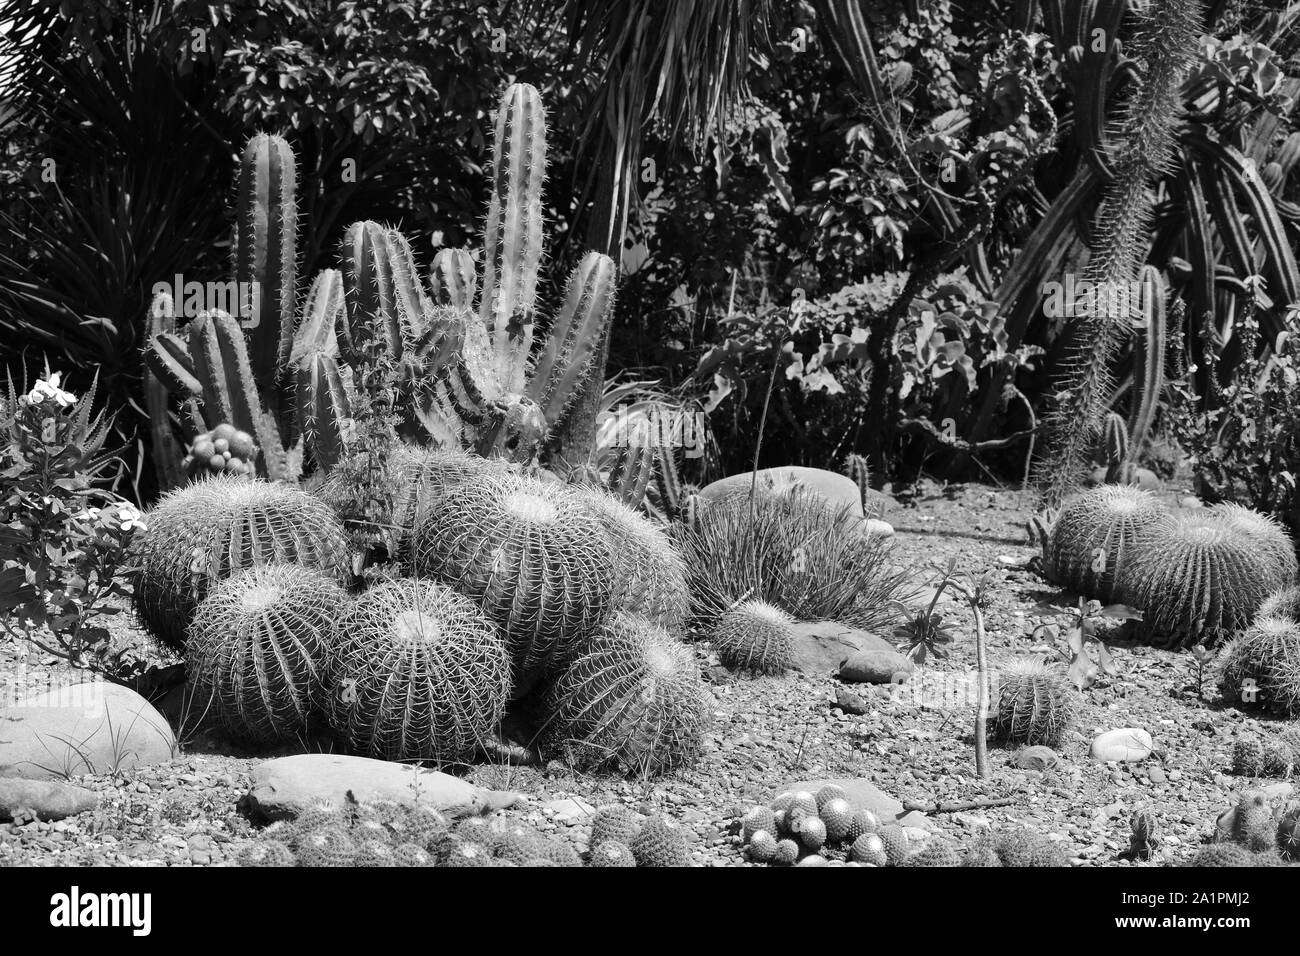 Golden barrel cacti and hedge cactus in monochrome. Stock Photo